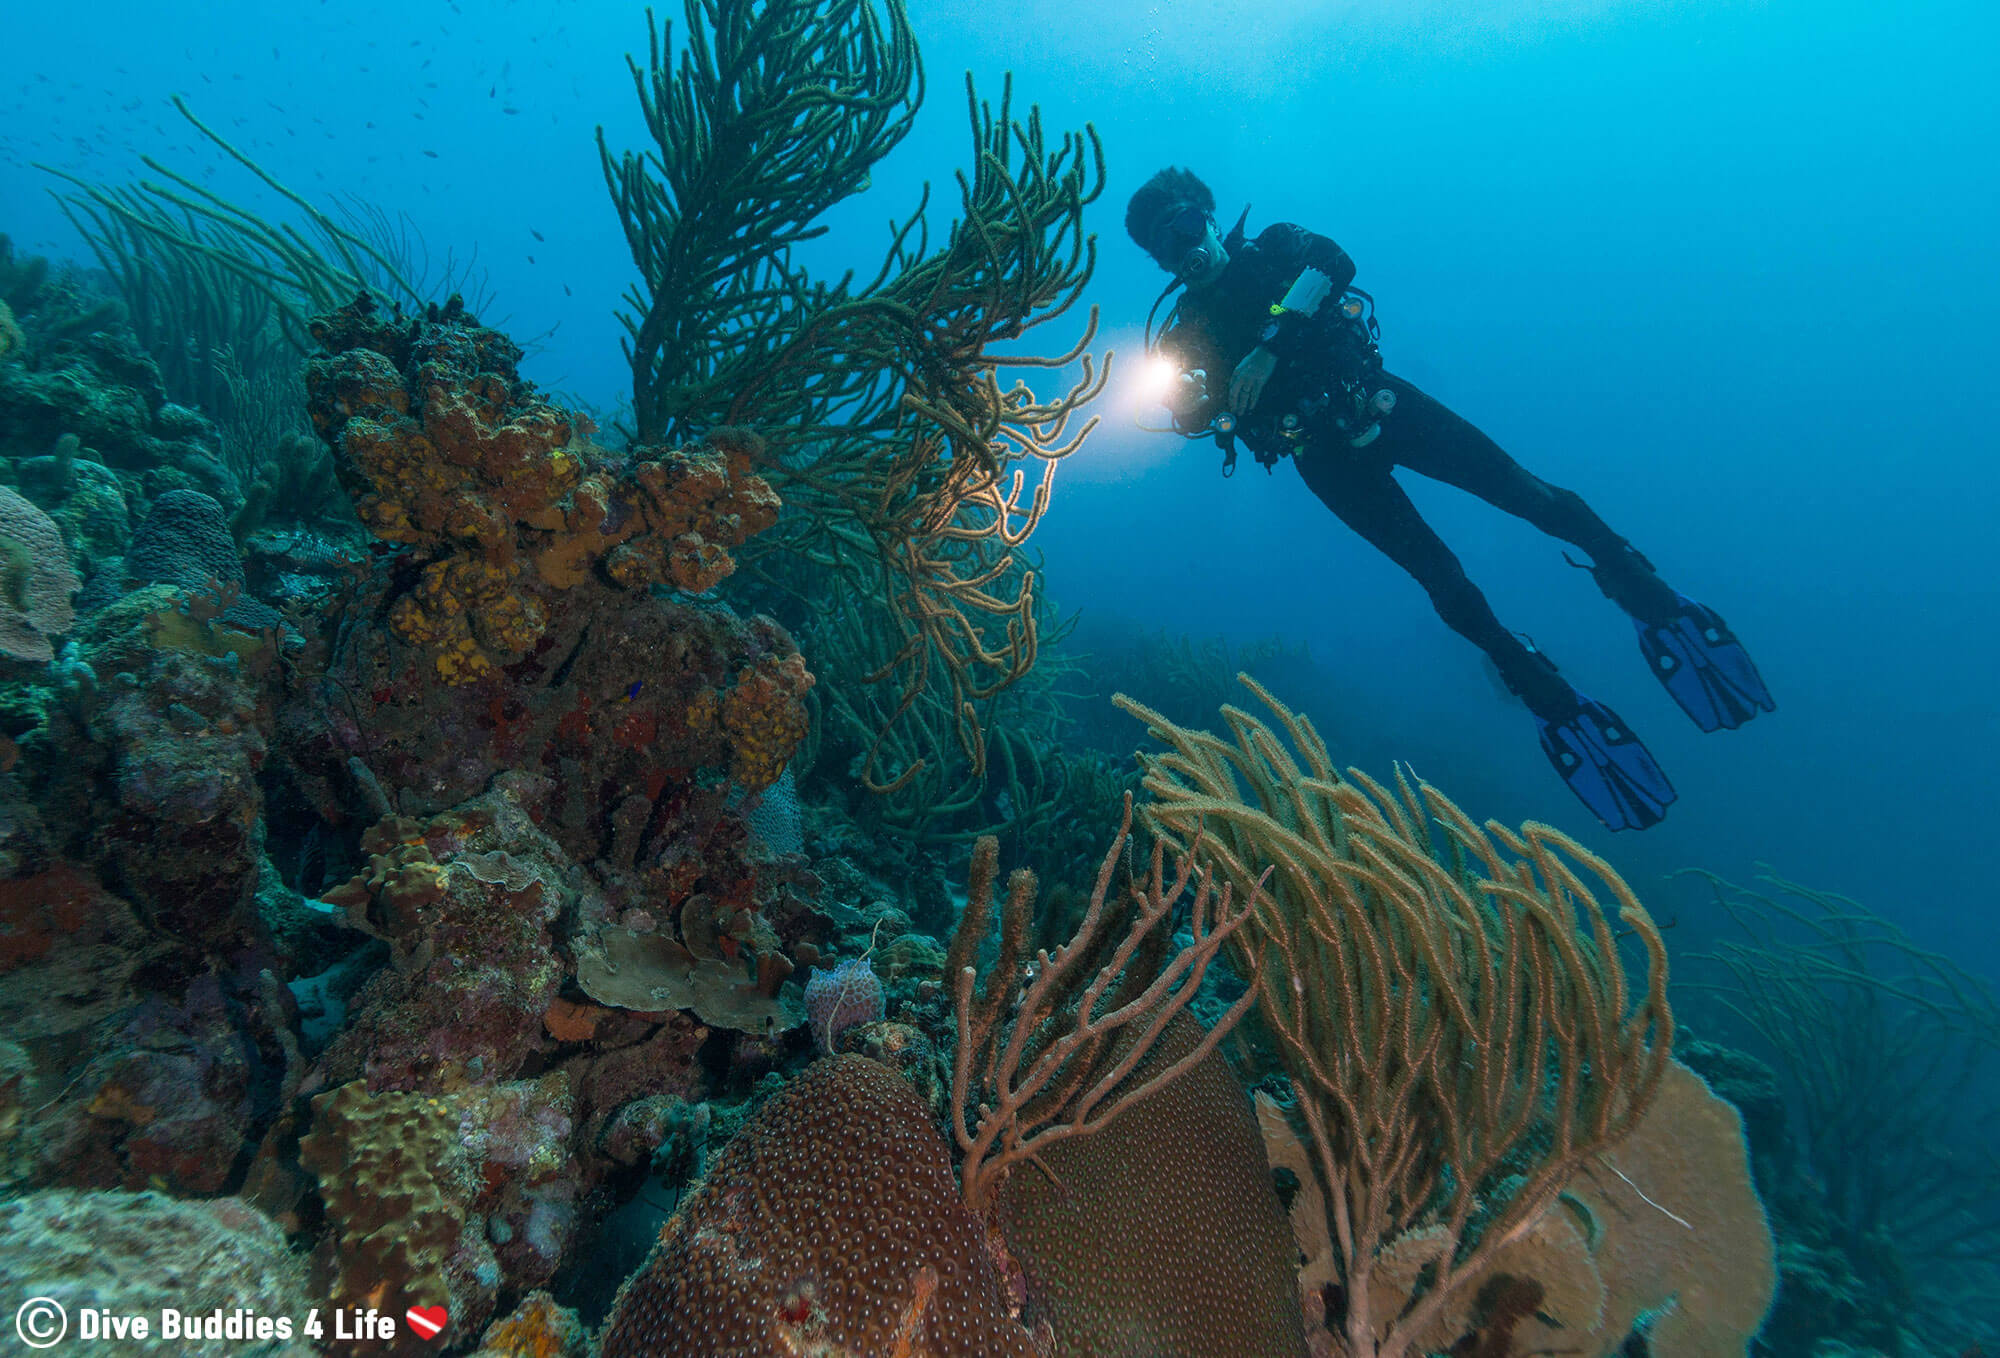 Joey Scuba Diving Bonaire with His Dive Right Light Behind Some Coral, the Dutch Antilles